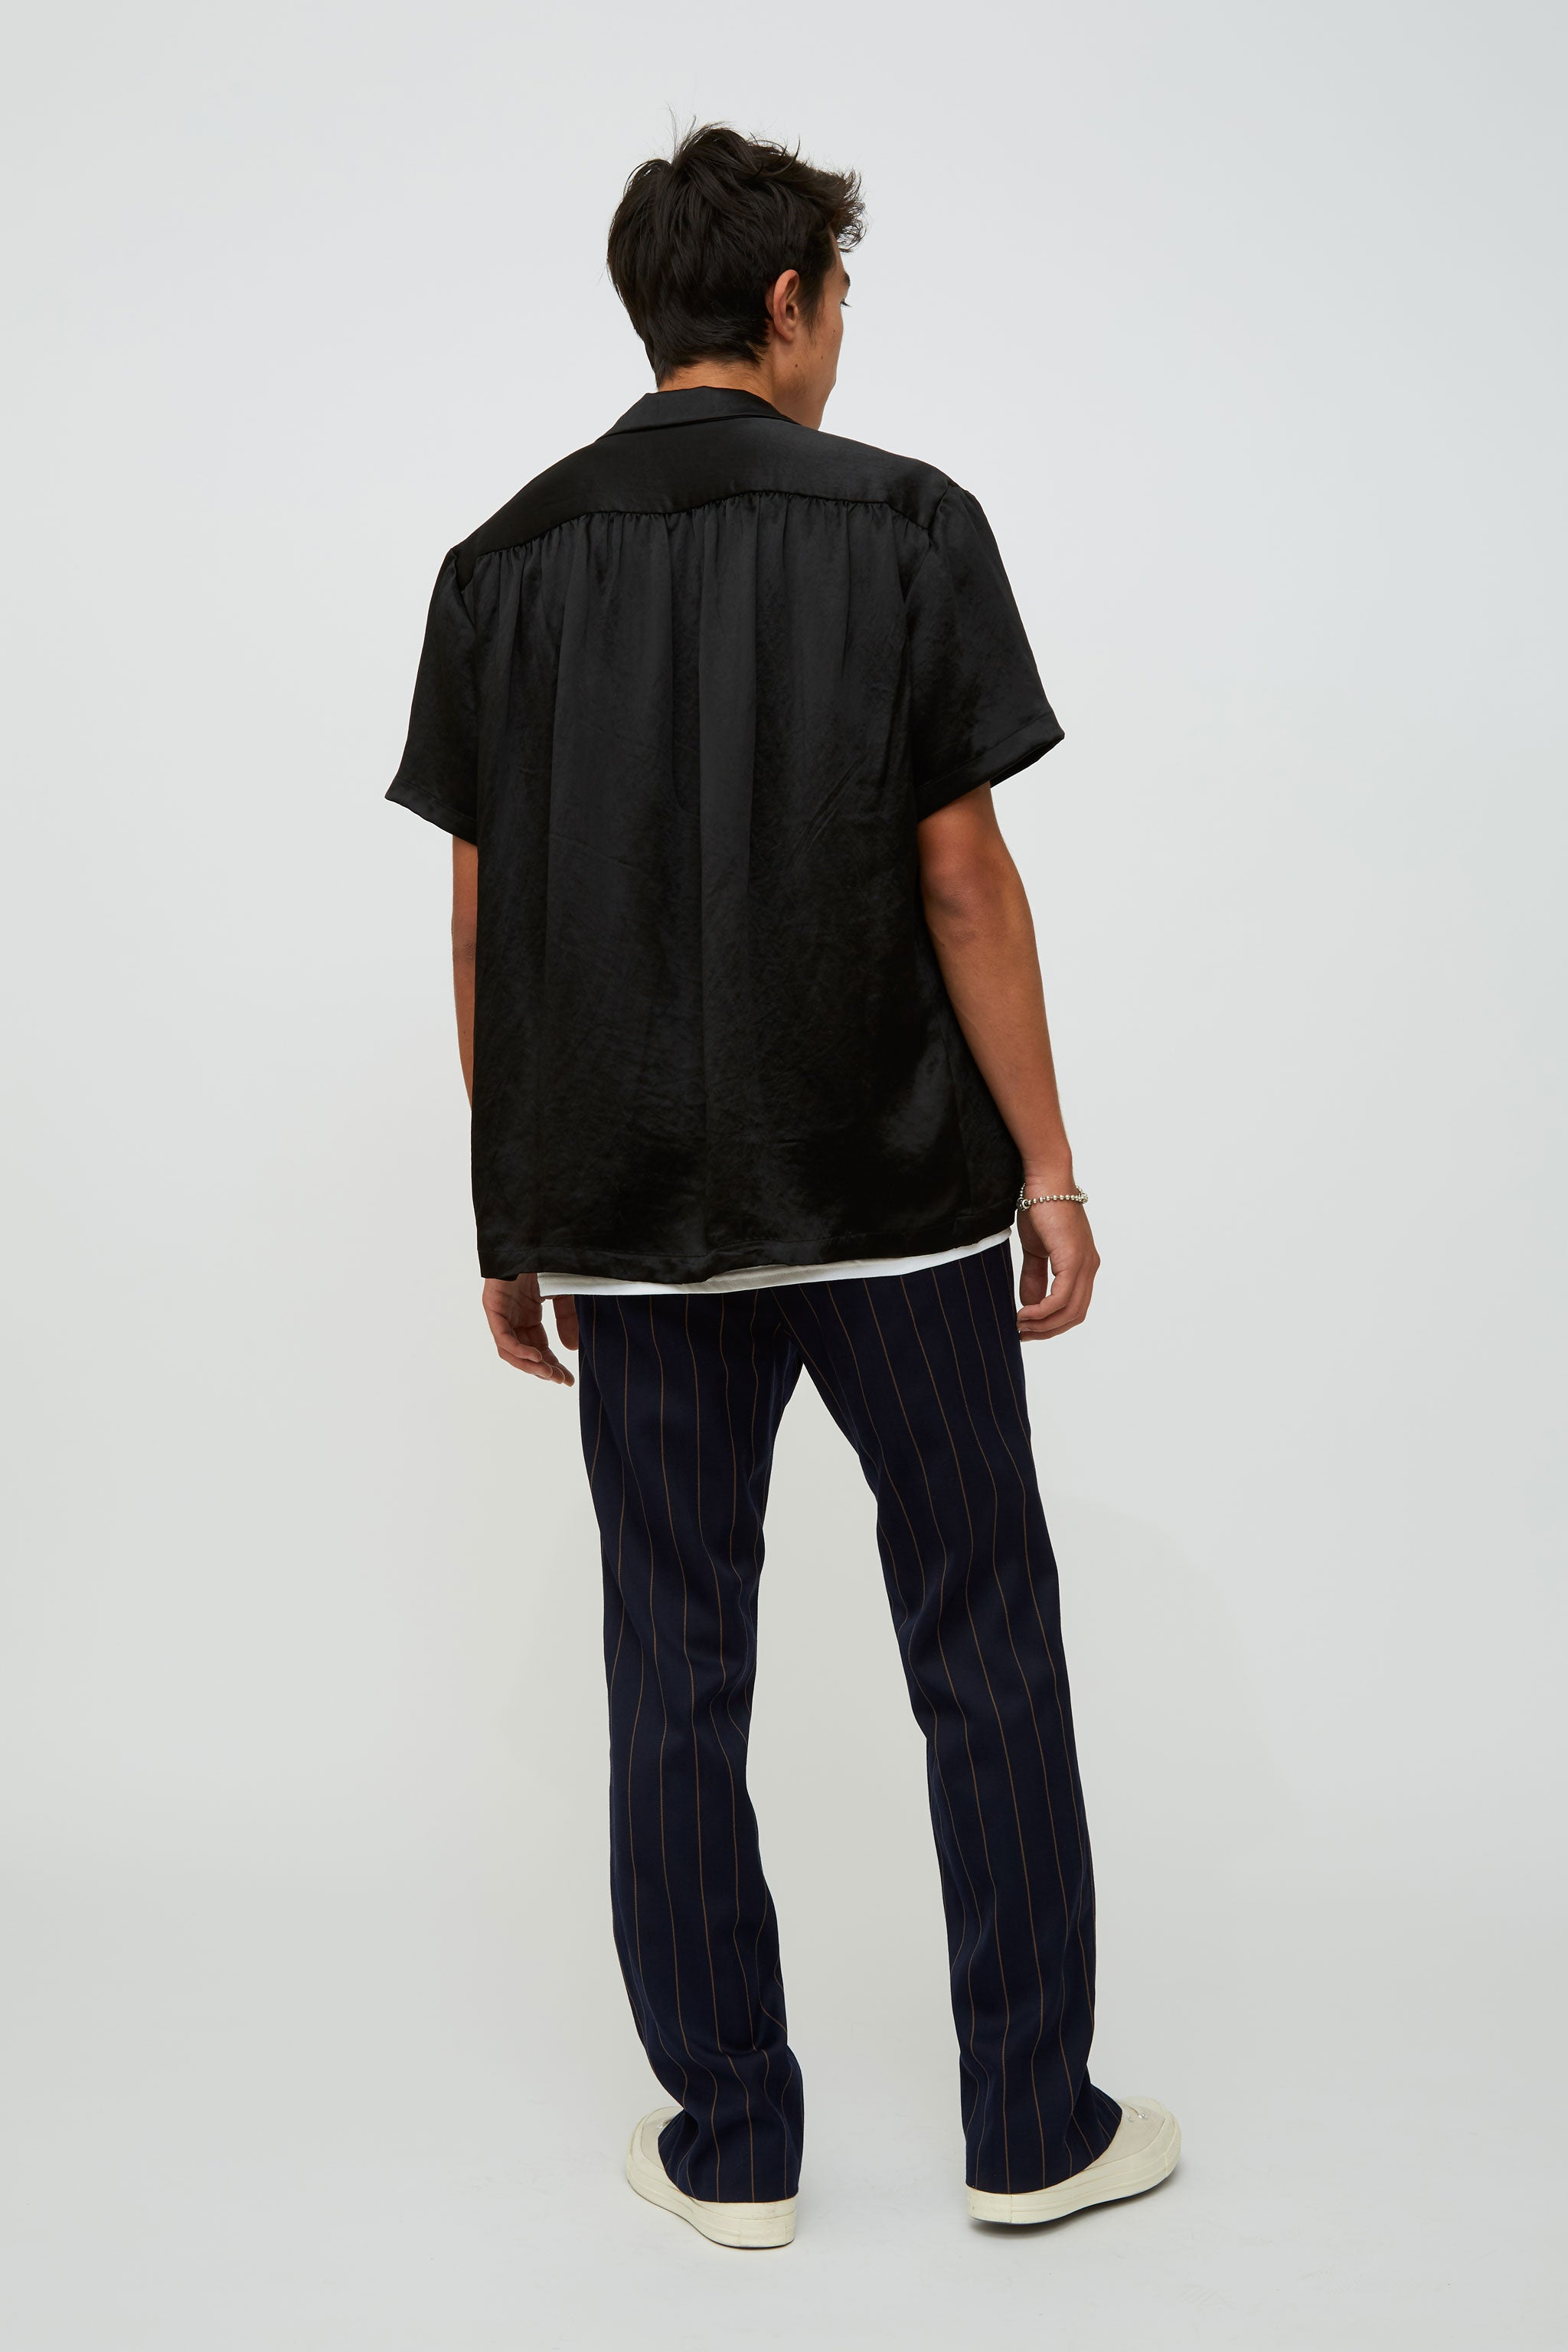 Goodfight FW18 Venus Bowler S/S Button Down Shirt Black